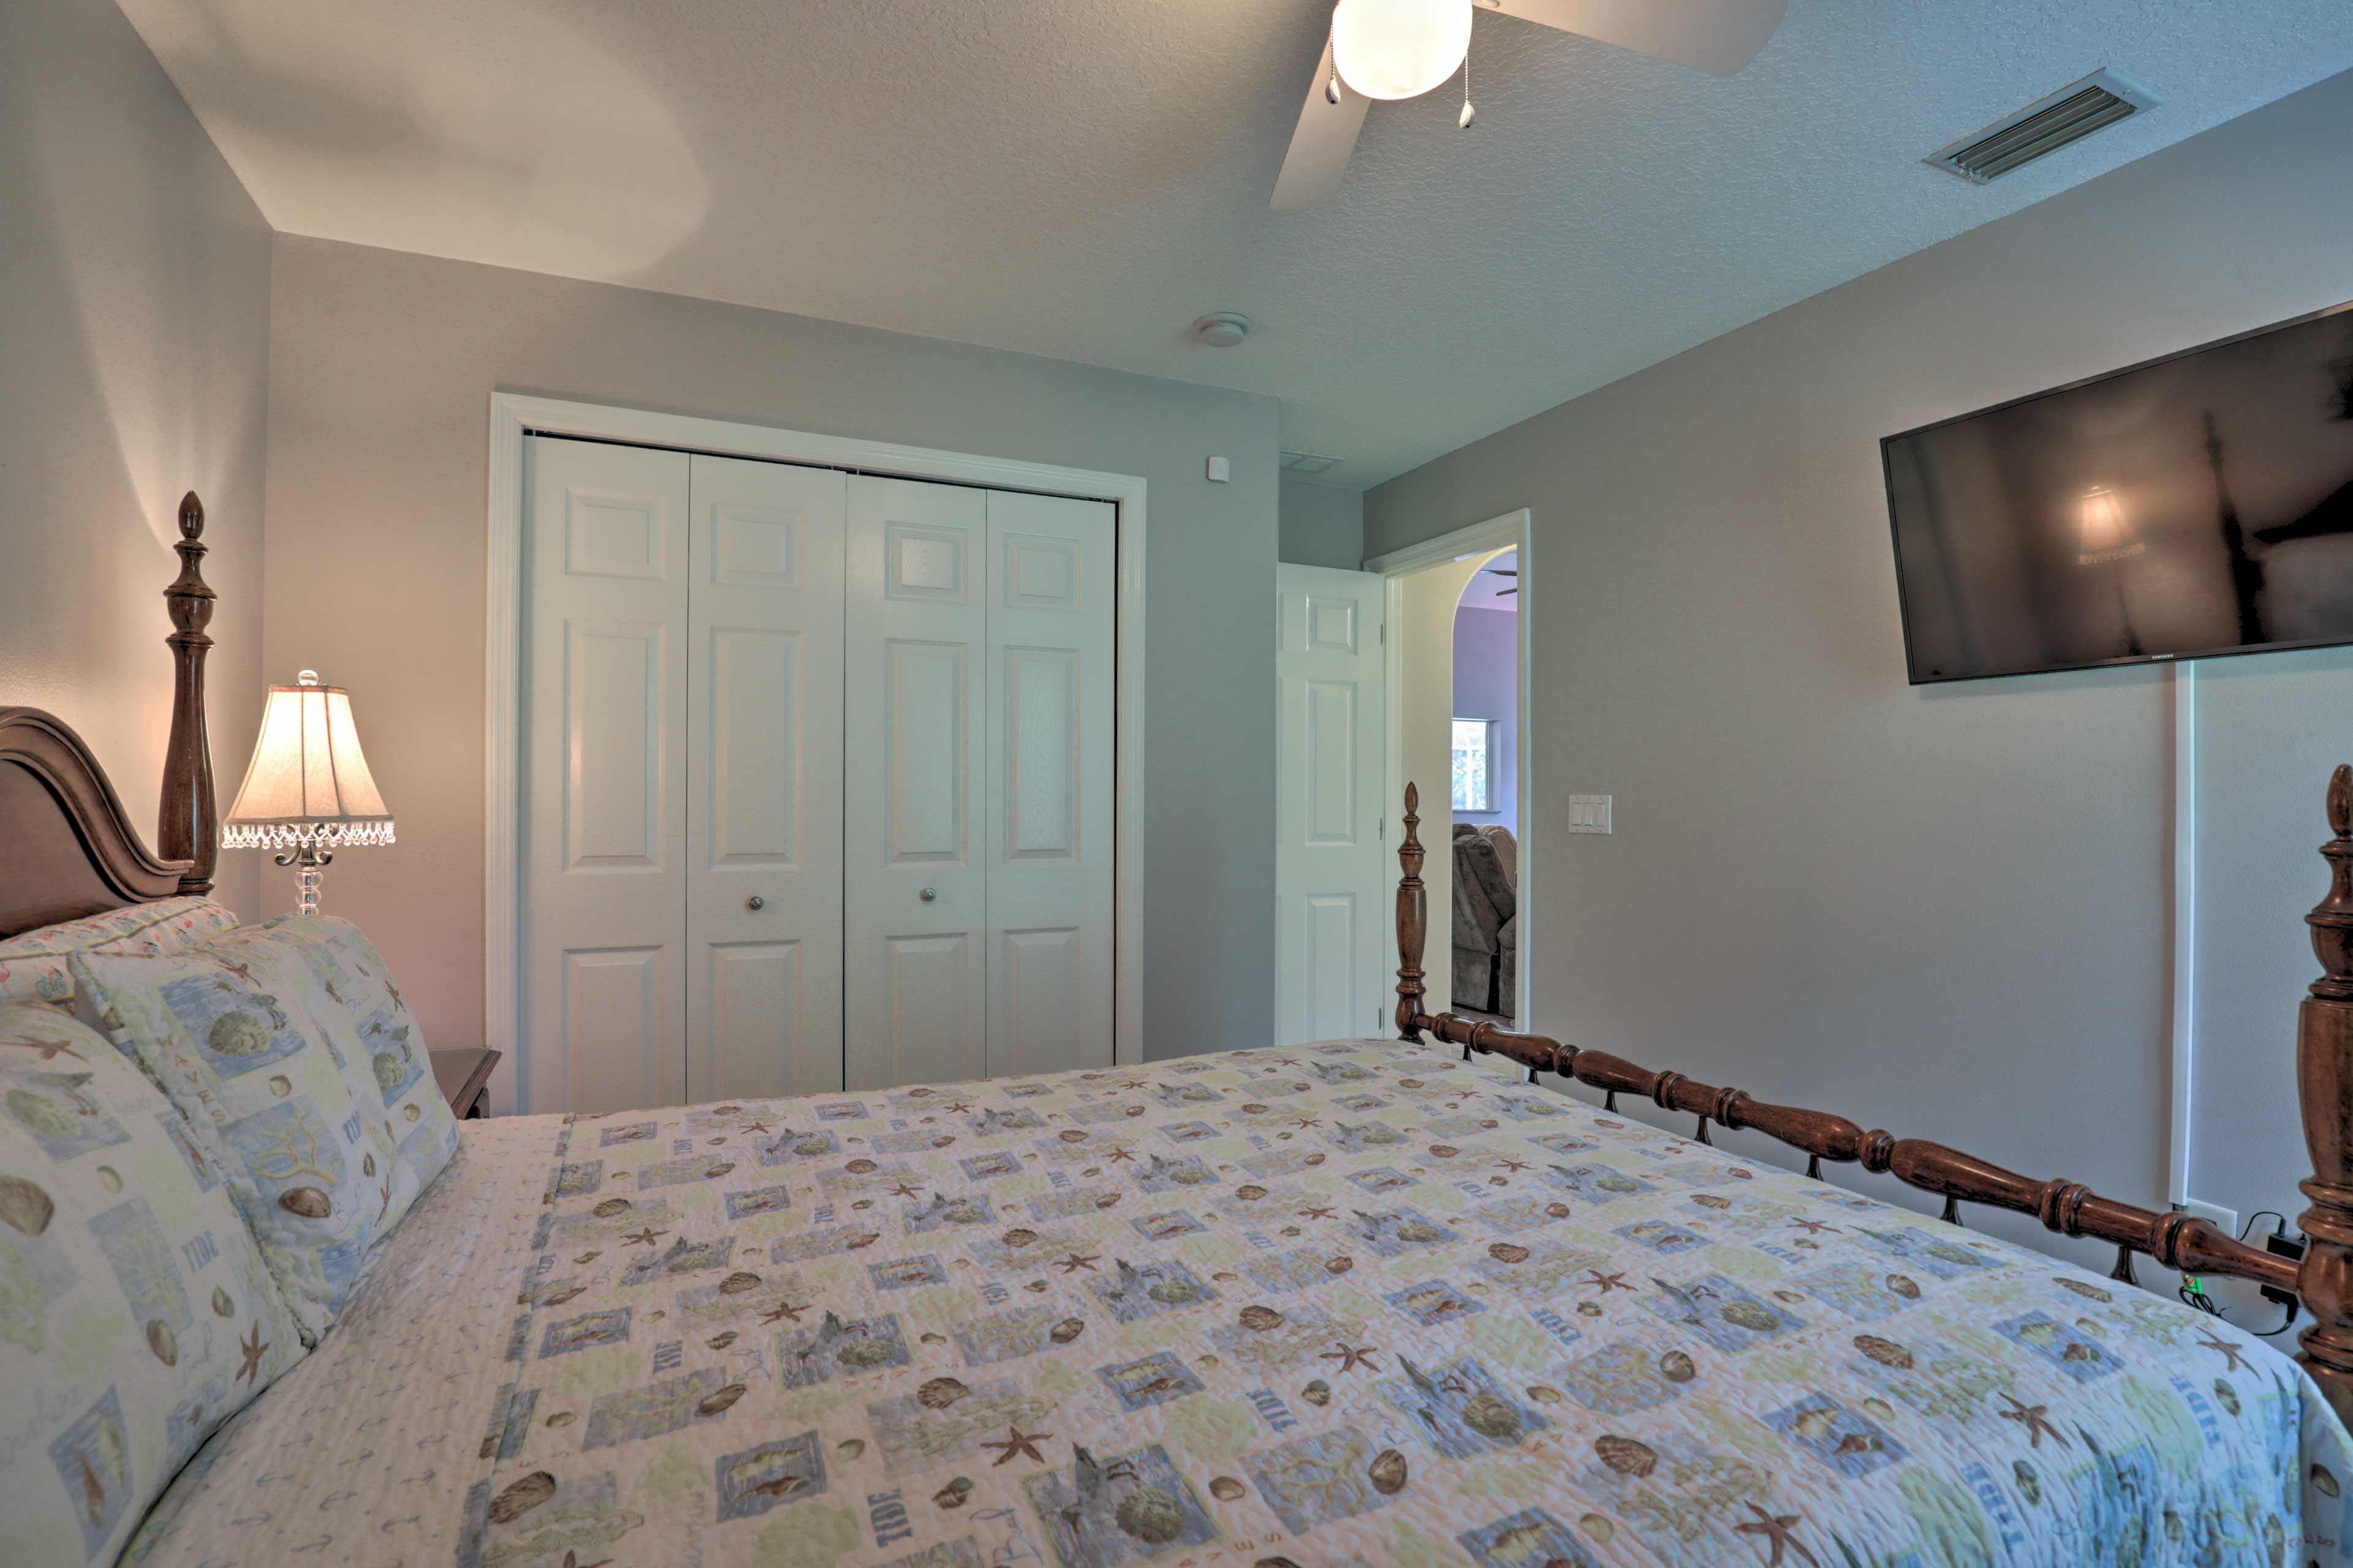 Wake up to plenty of natural sunlight in this room.